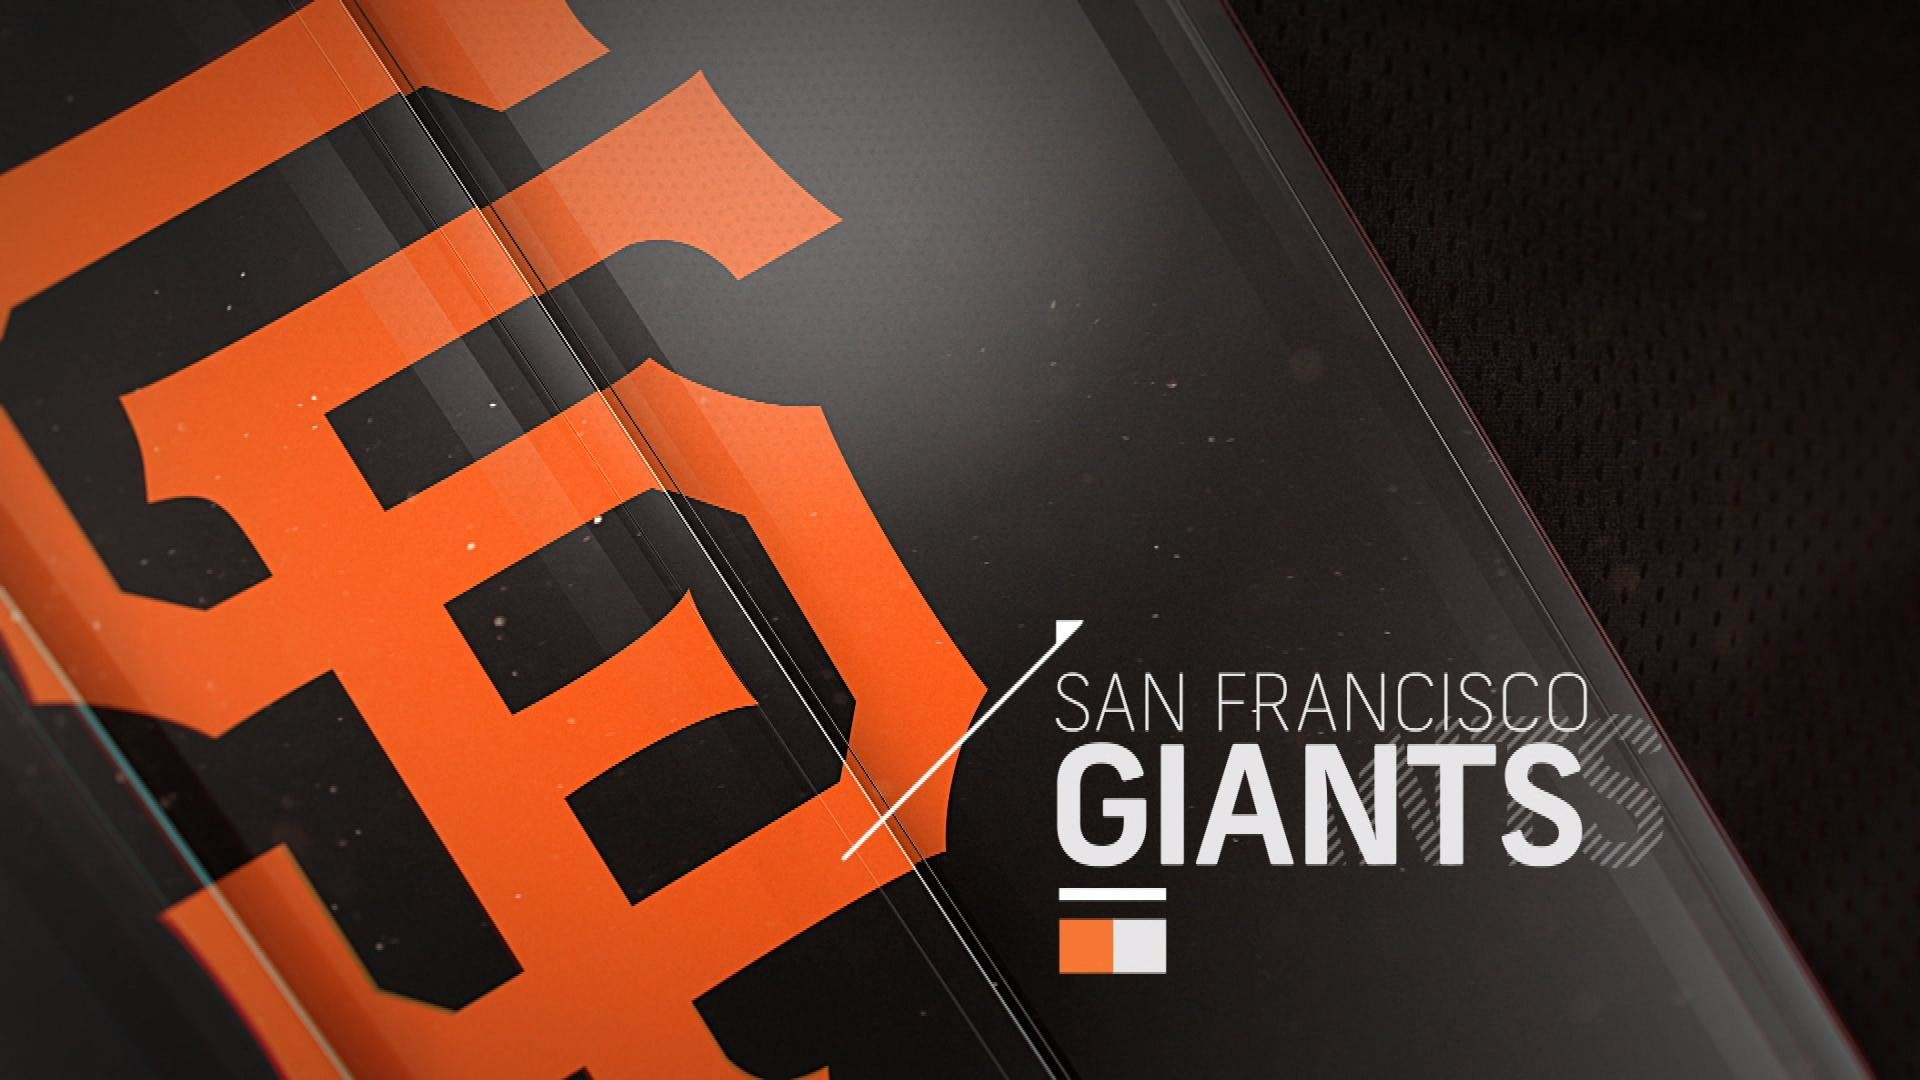 San Francisco Giants Wallpaper San Francisco Giants Wallpapers 75 Background Pictures